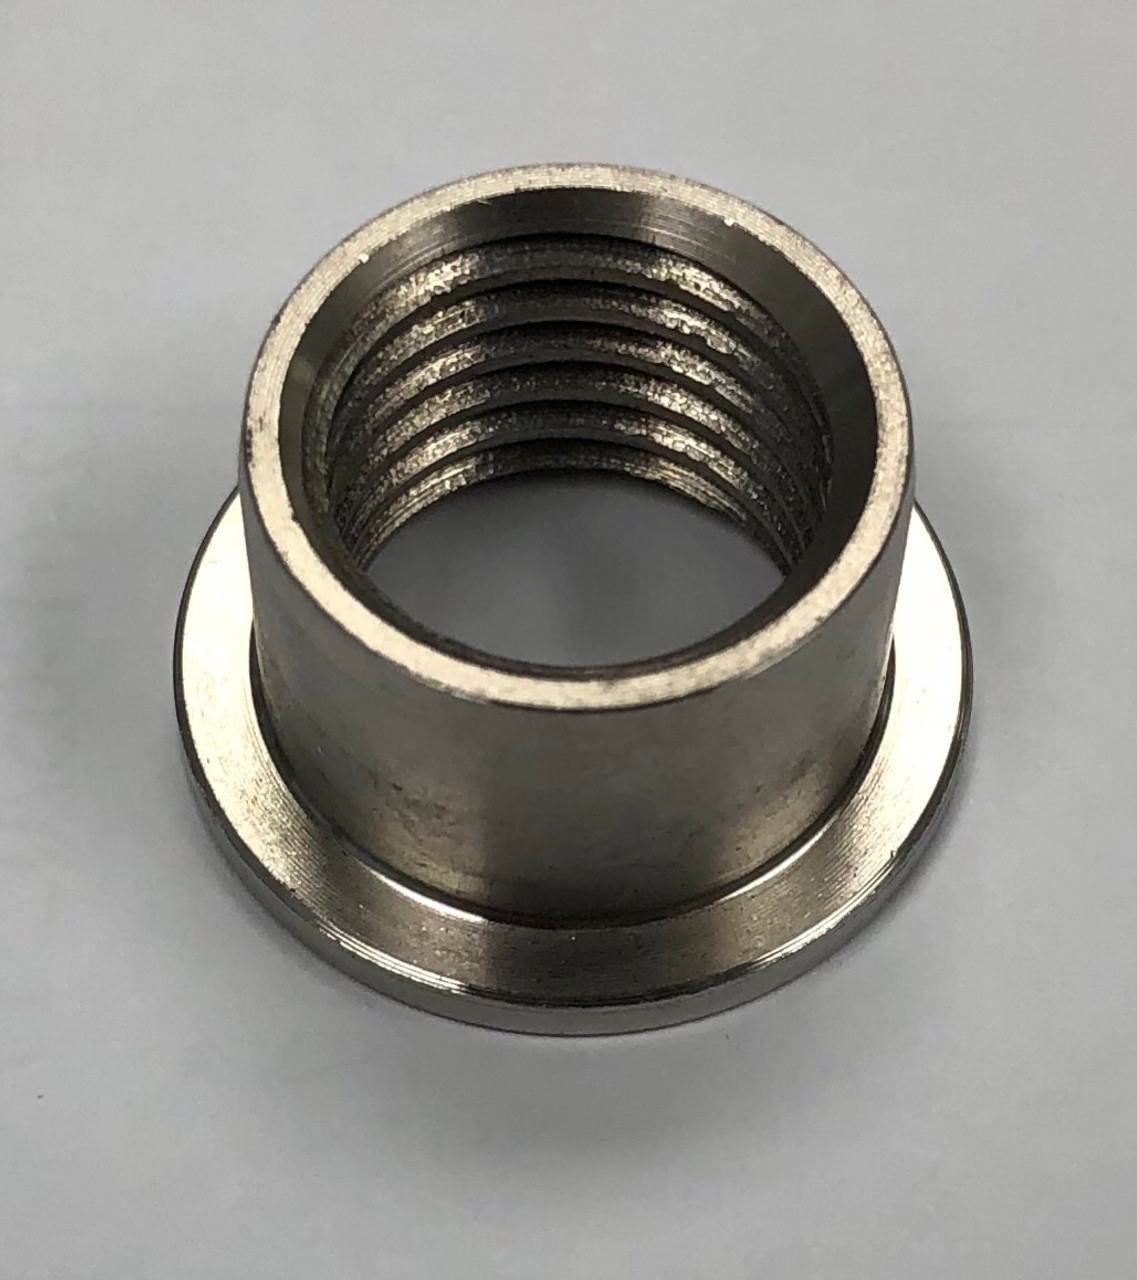 Talsa H-268 - H Series - Threaded Ring for Aluminium Piston Only - 7065